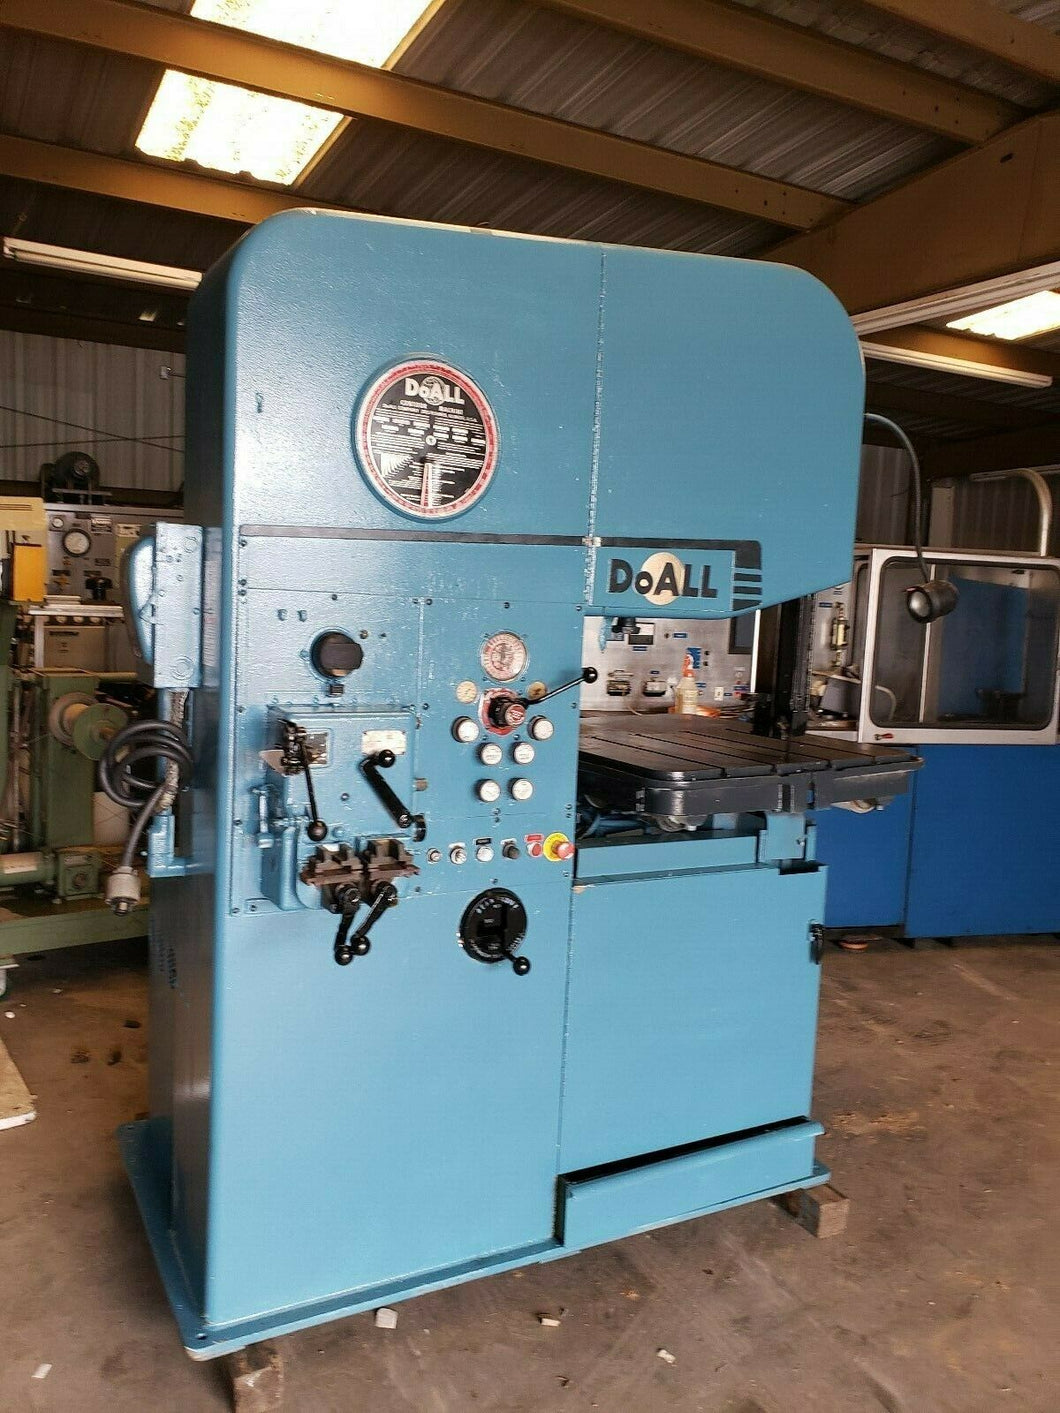 DOALL VERTICAL BANDSAW MODEL 26-3, 40-10,800 FPM, 32